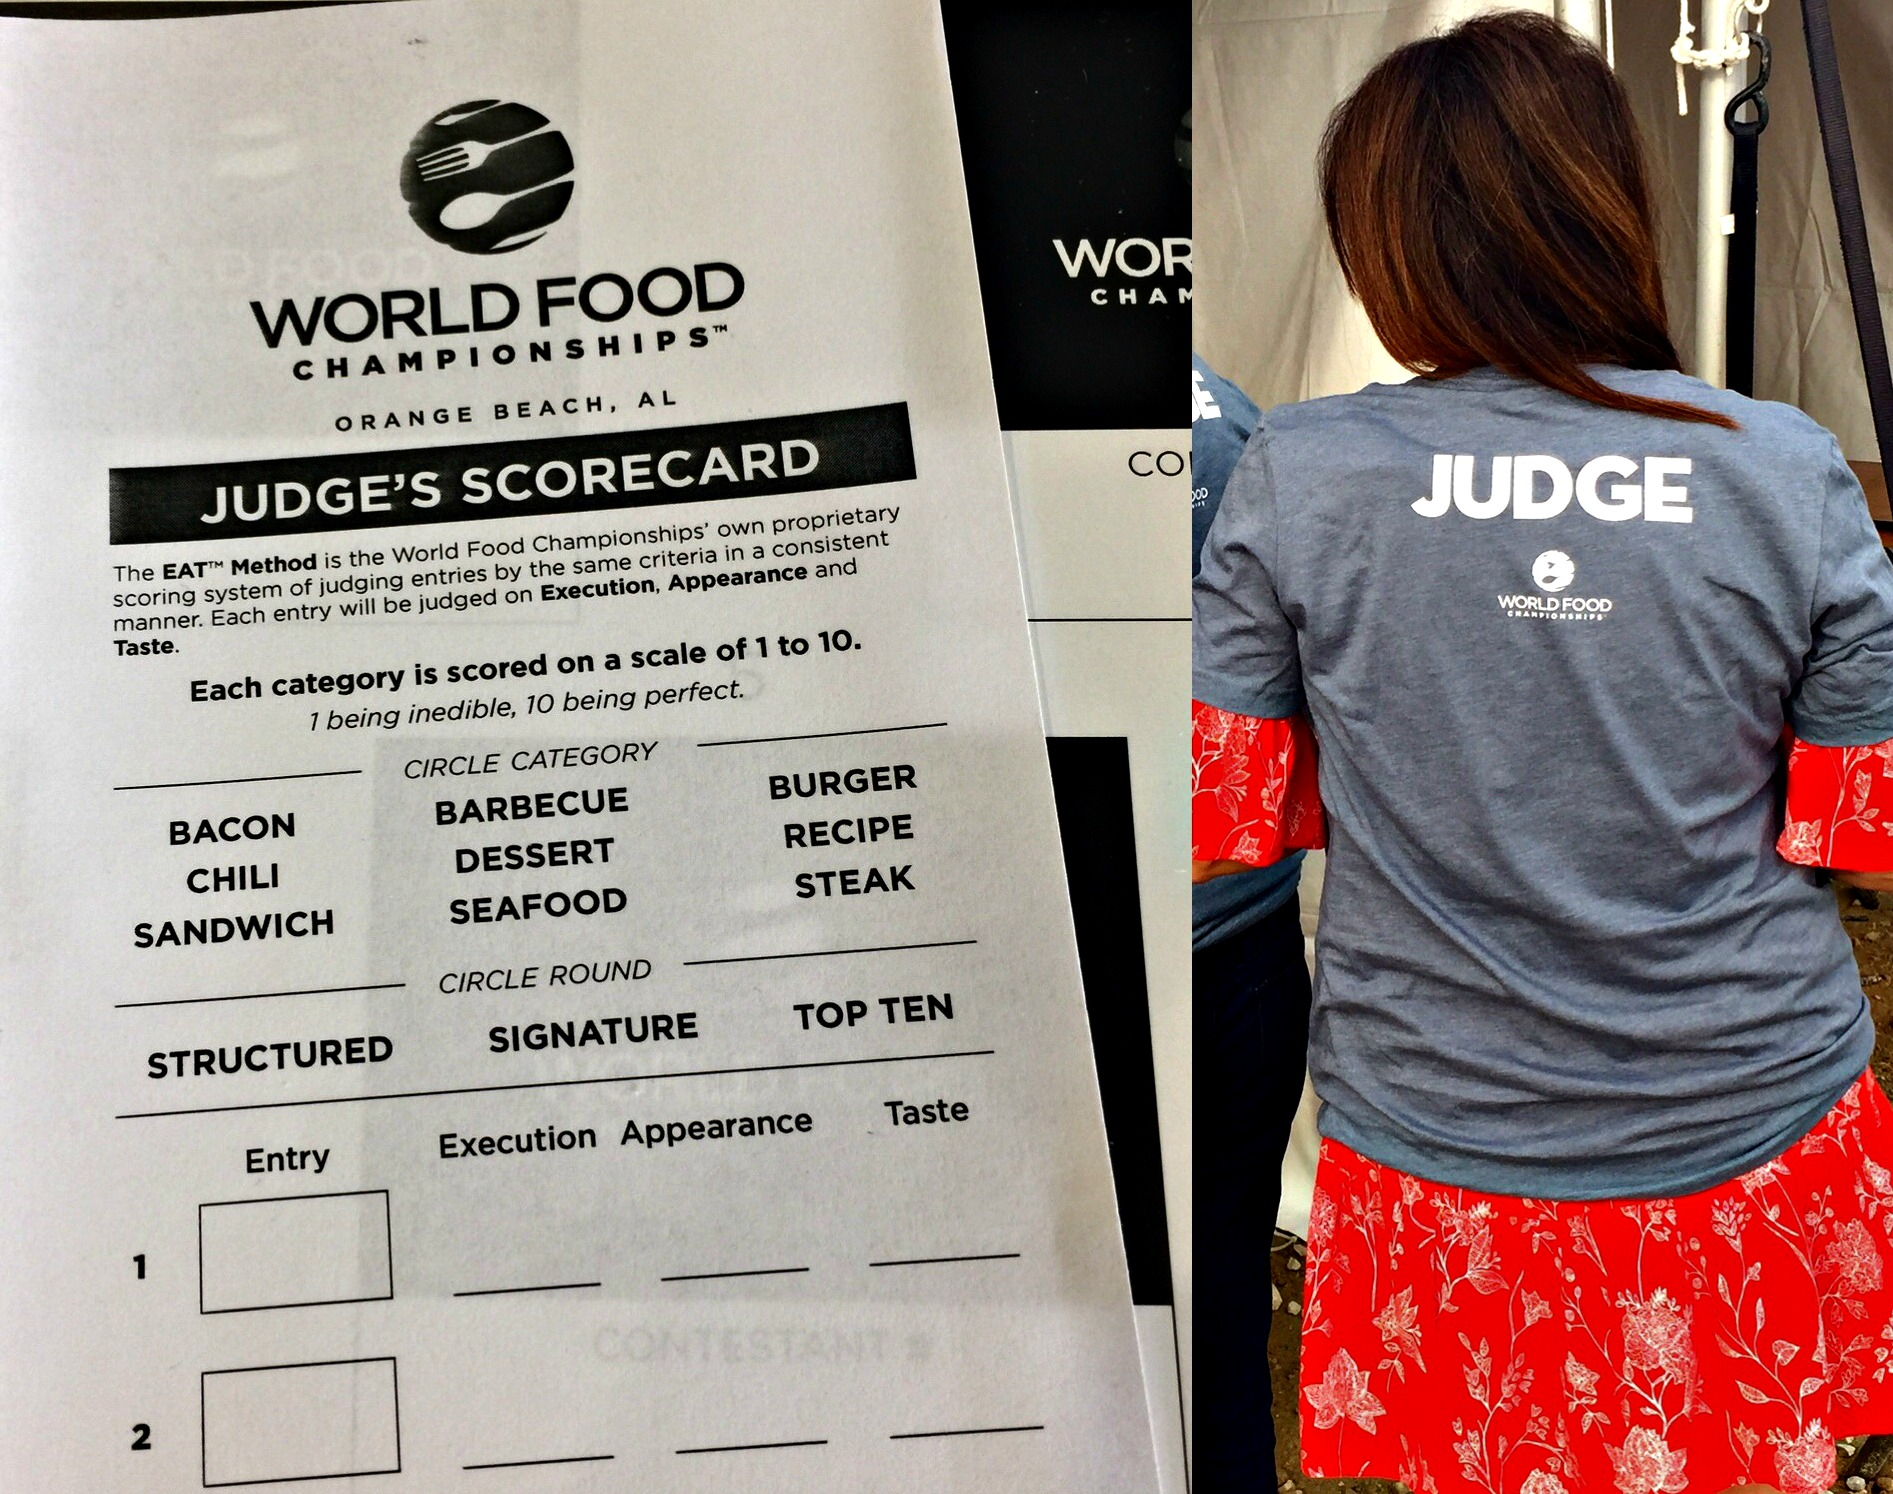 Judges scorecard at World Food Championships to judge food competition